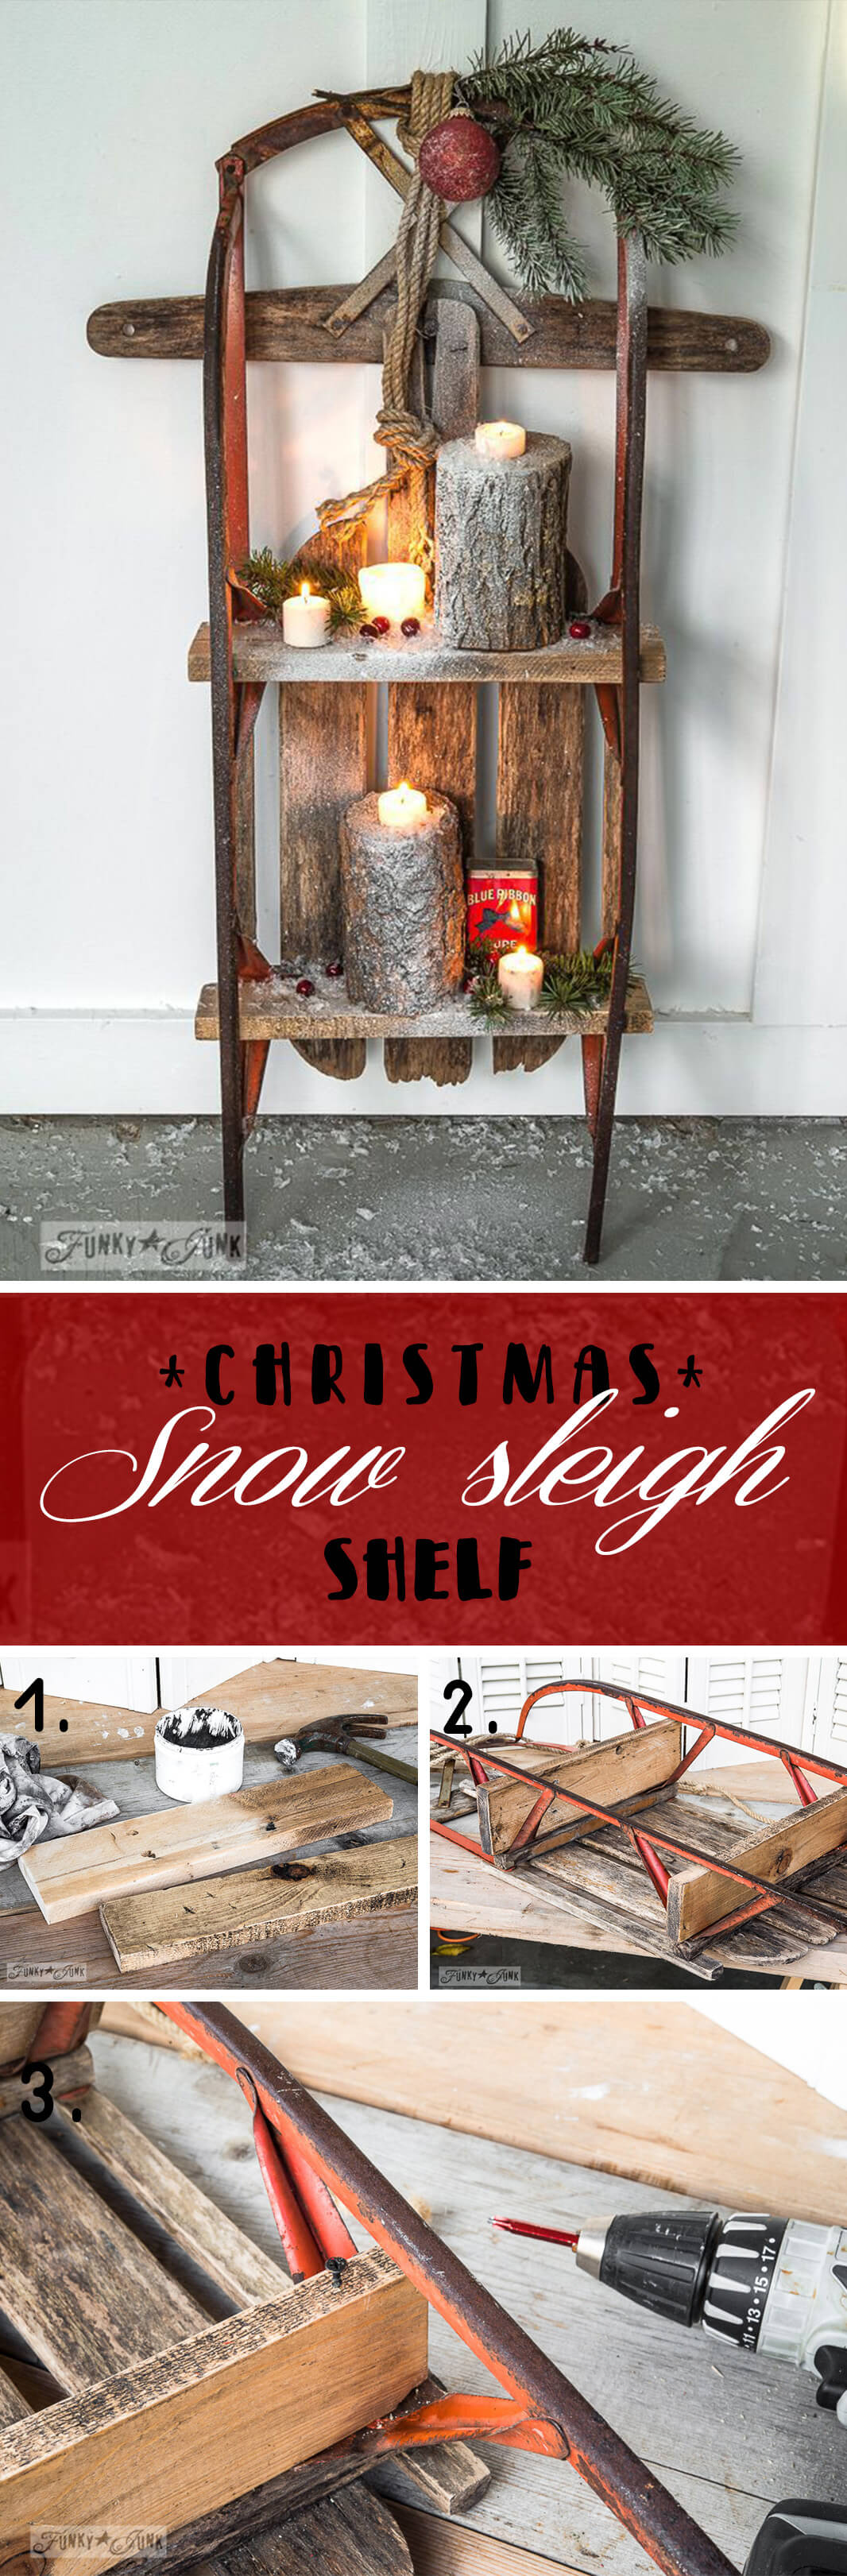 Vintage Sleigh Christmas Shelf Display